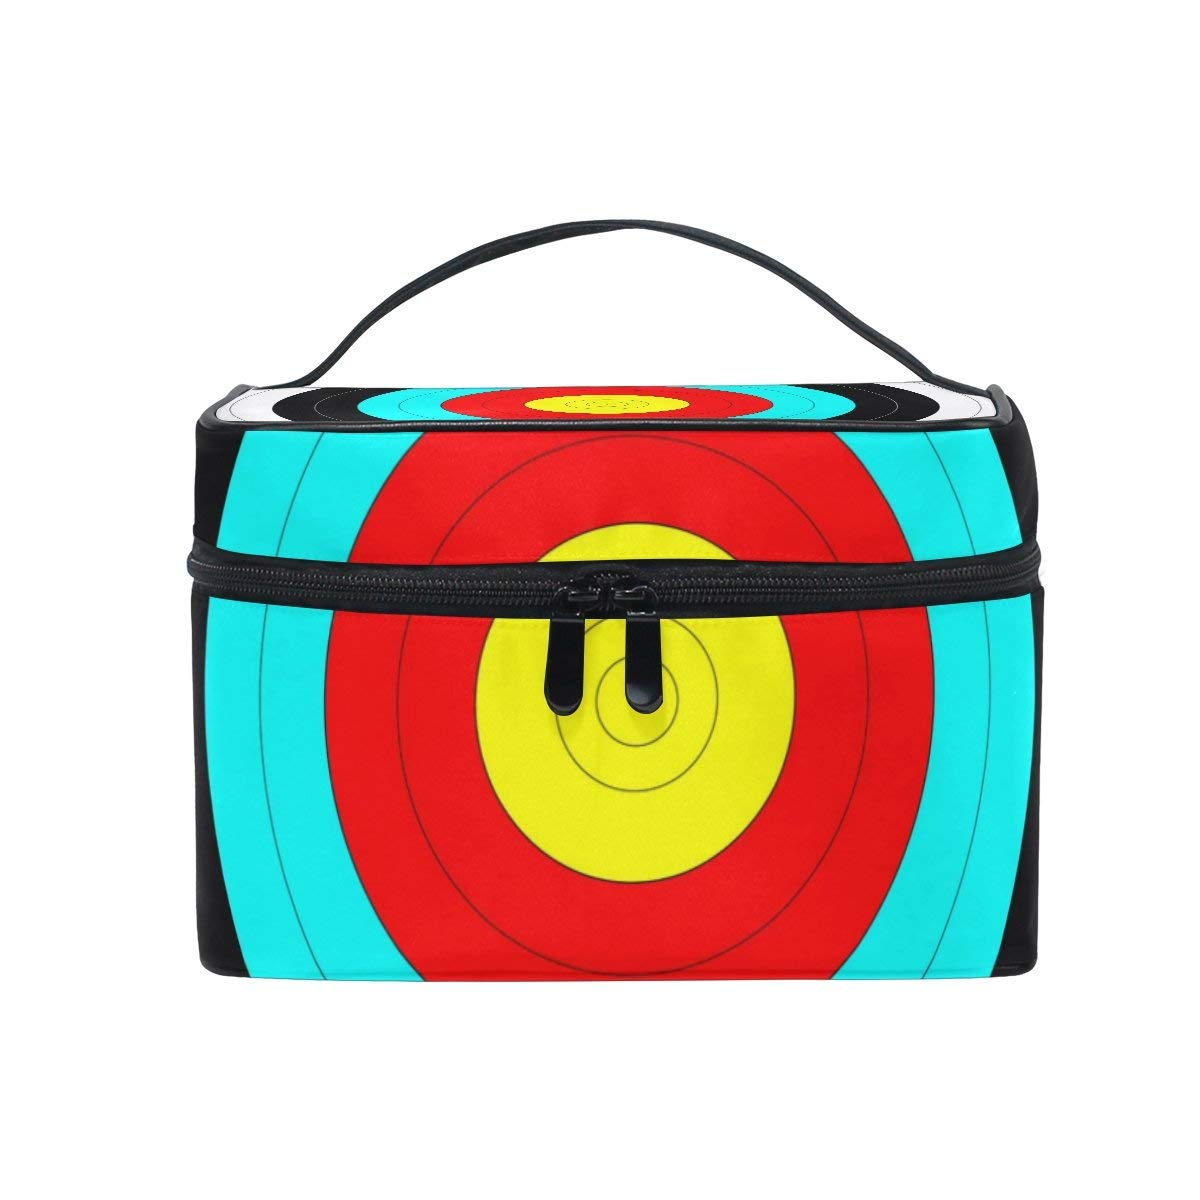 Cheap Target Cosmetic Case, find Target Cosmetic Case deals on line